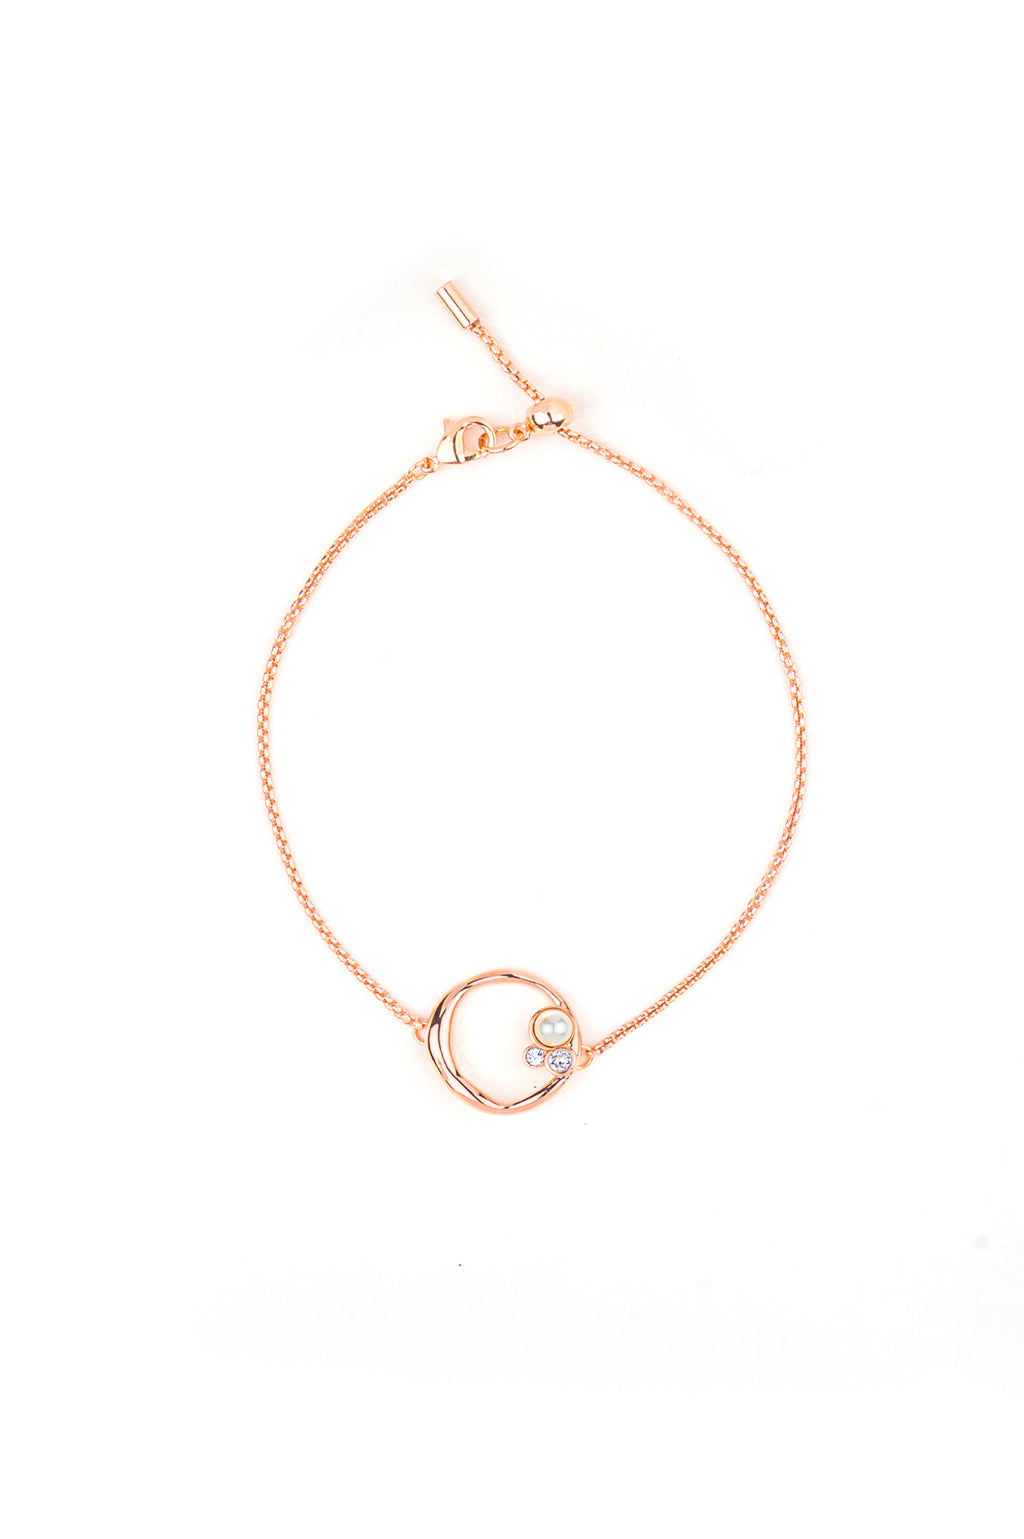 Brigitte Bracelet in Rose Gold